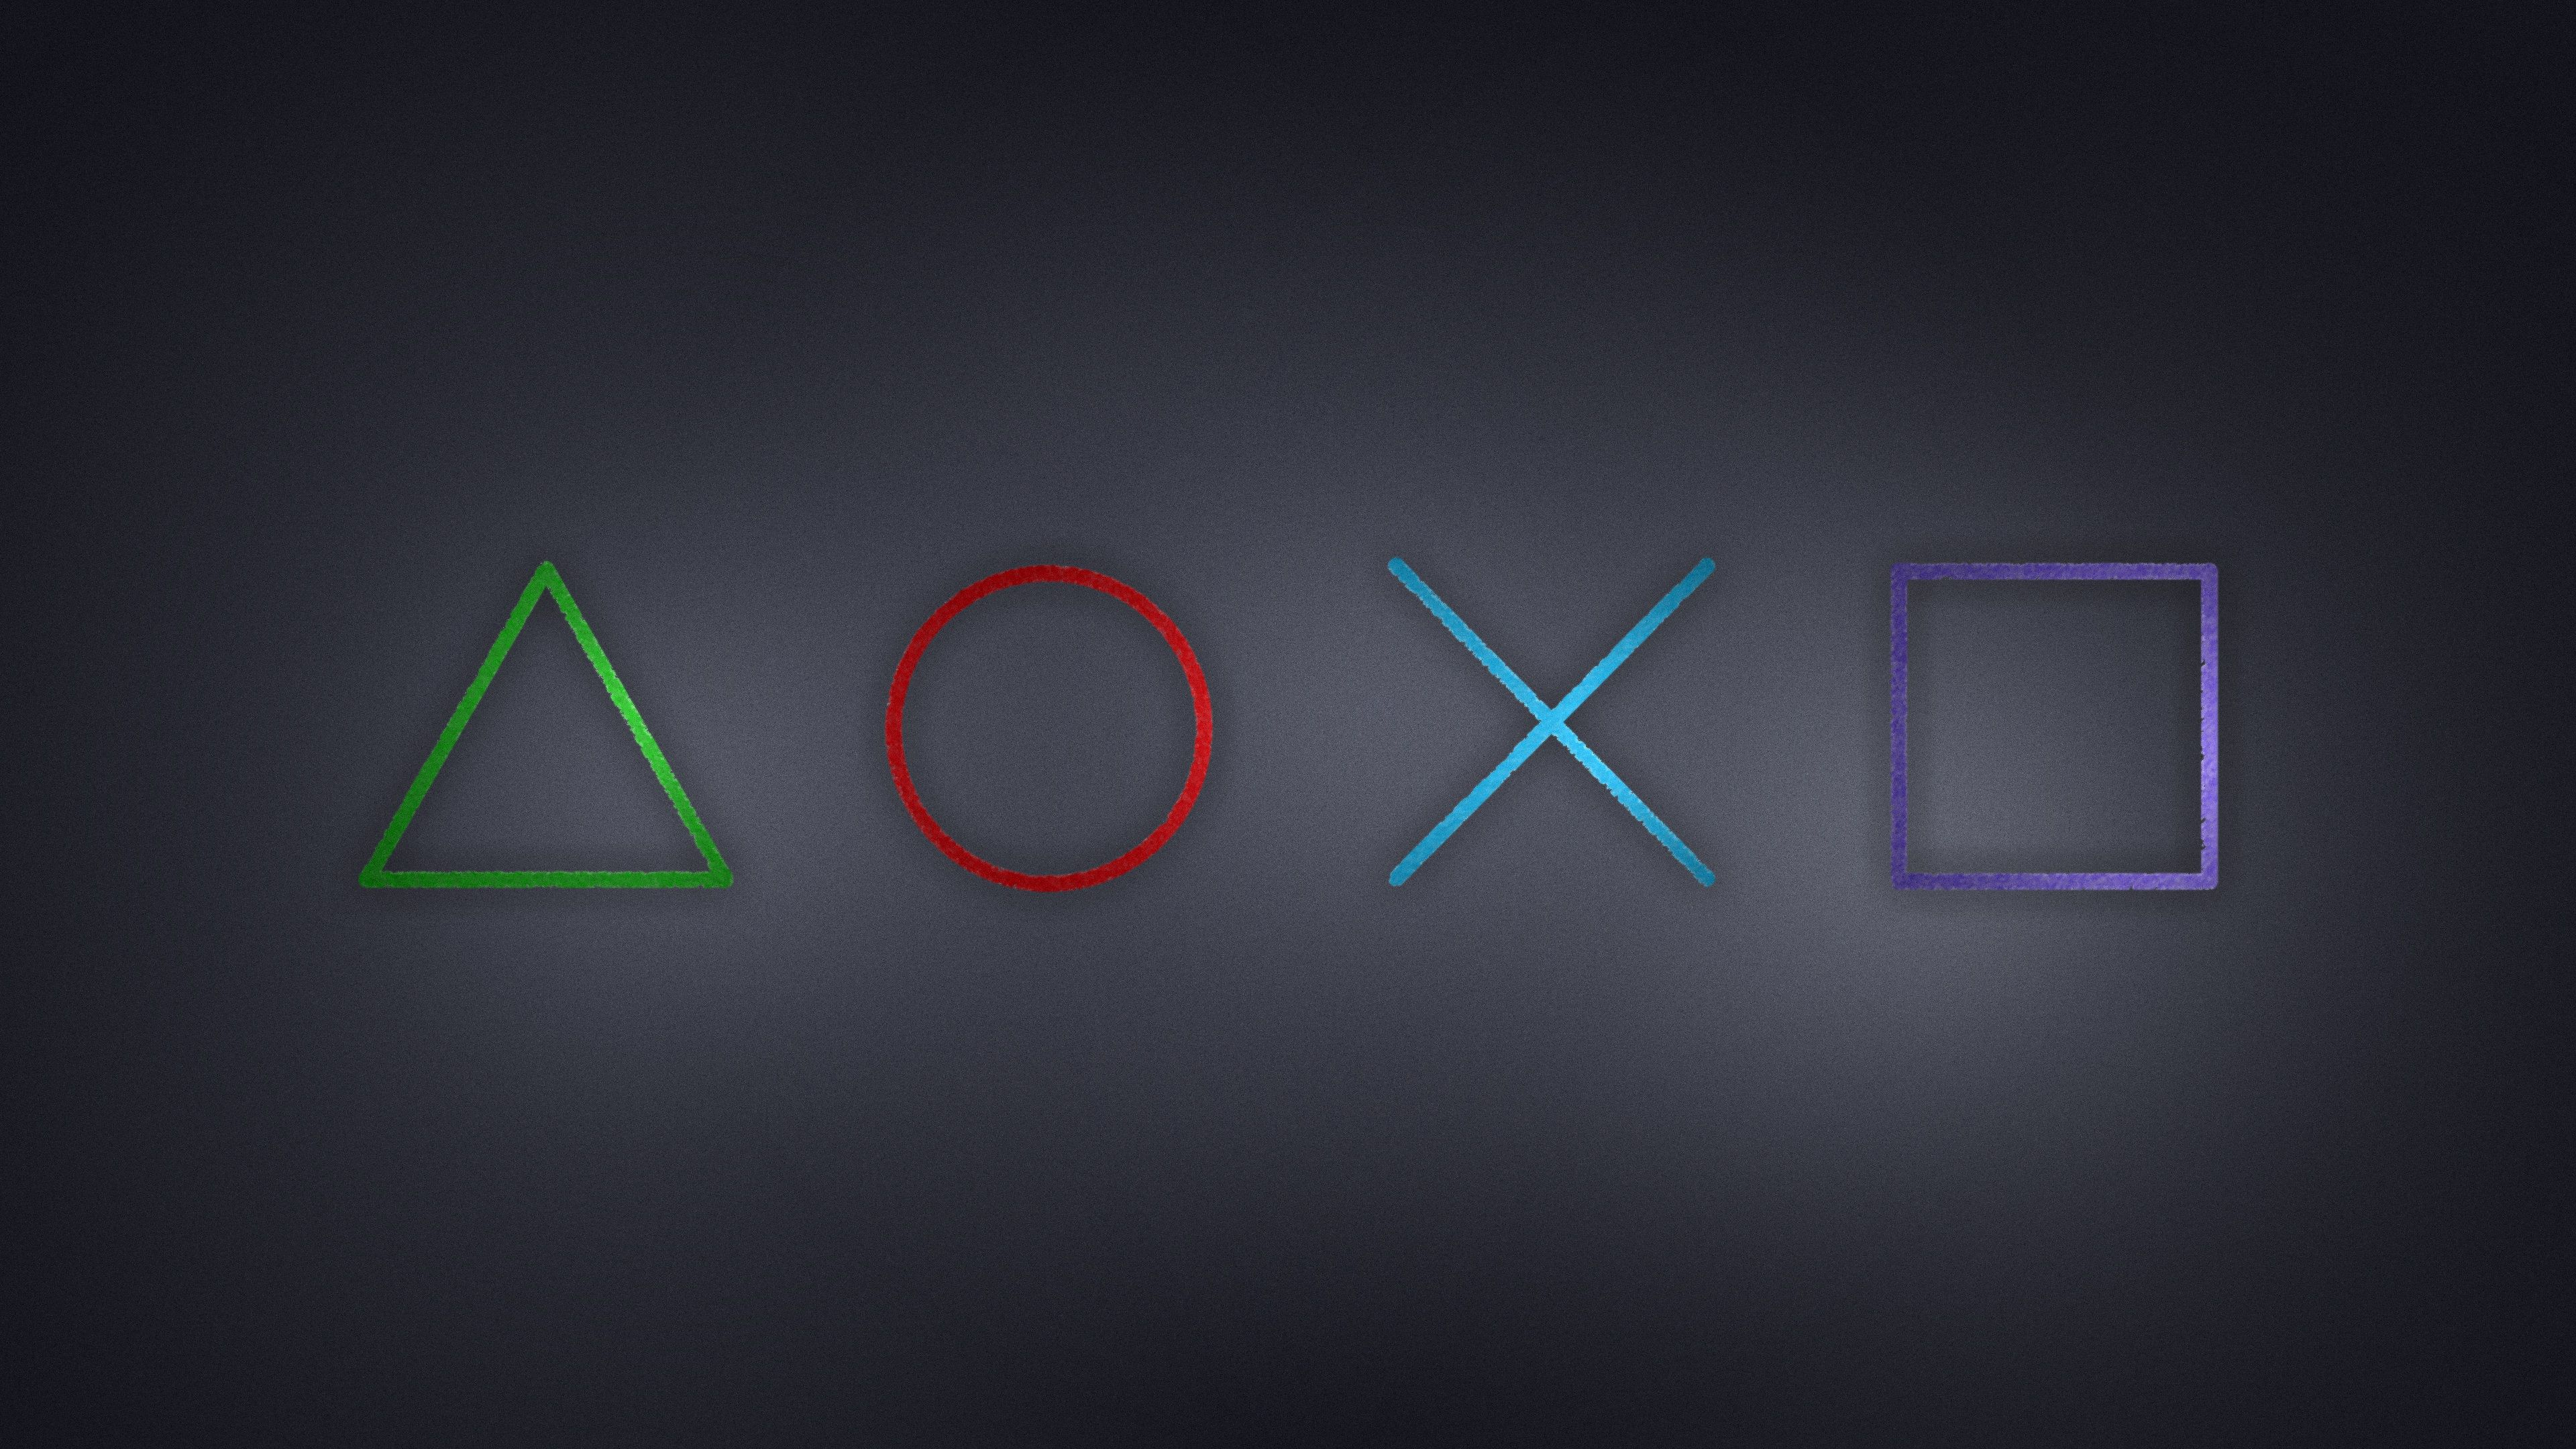 Another Wallpaper With The Playstation Symbols 4k Image